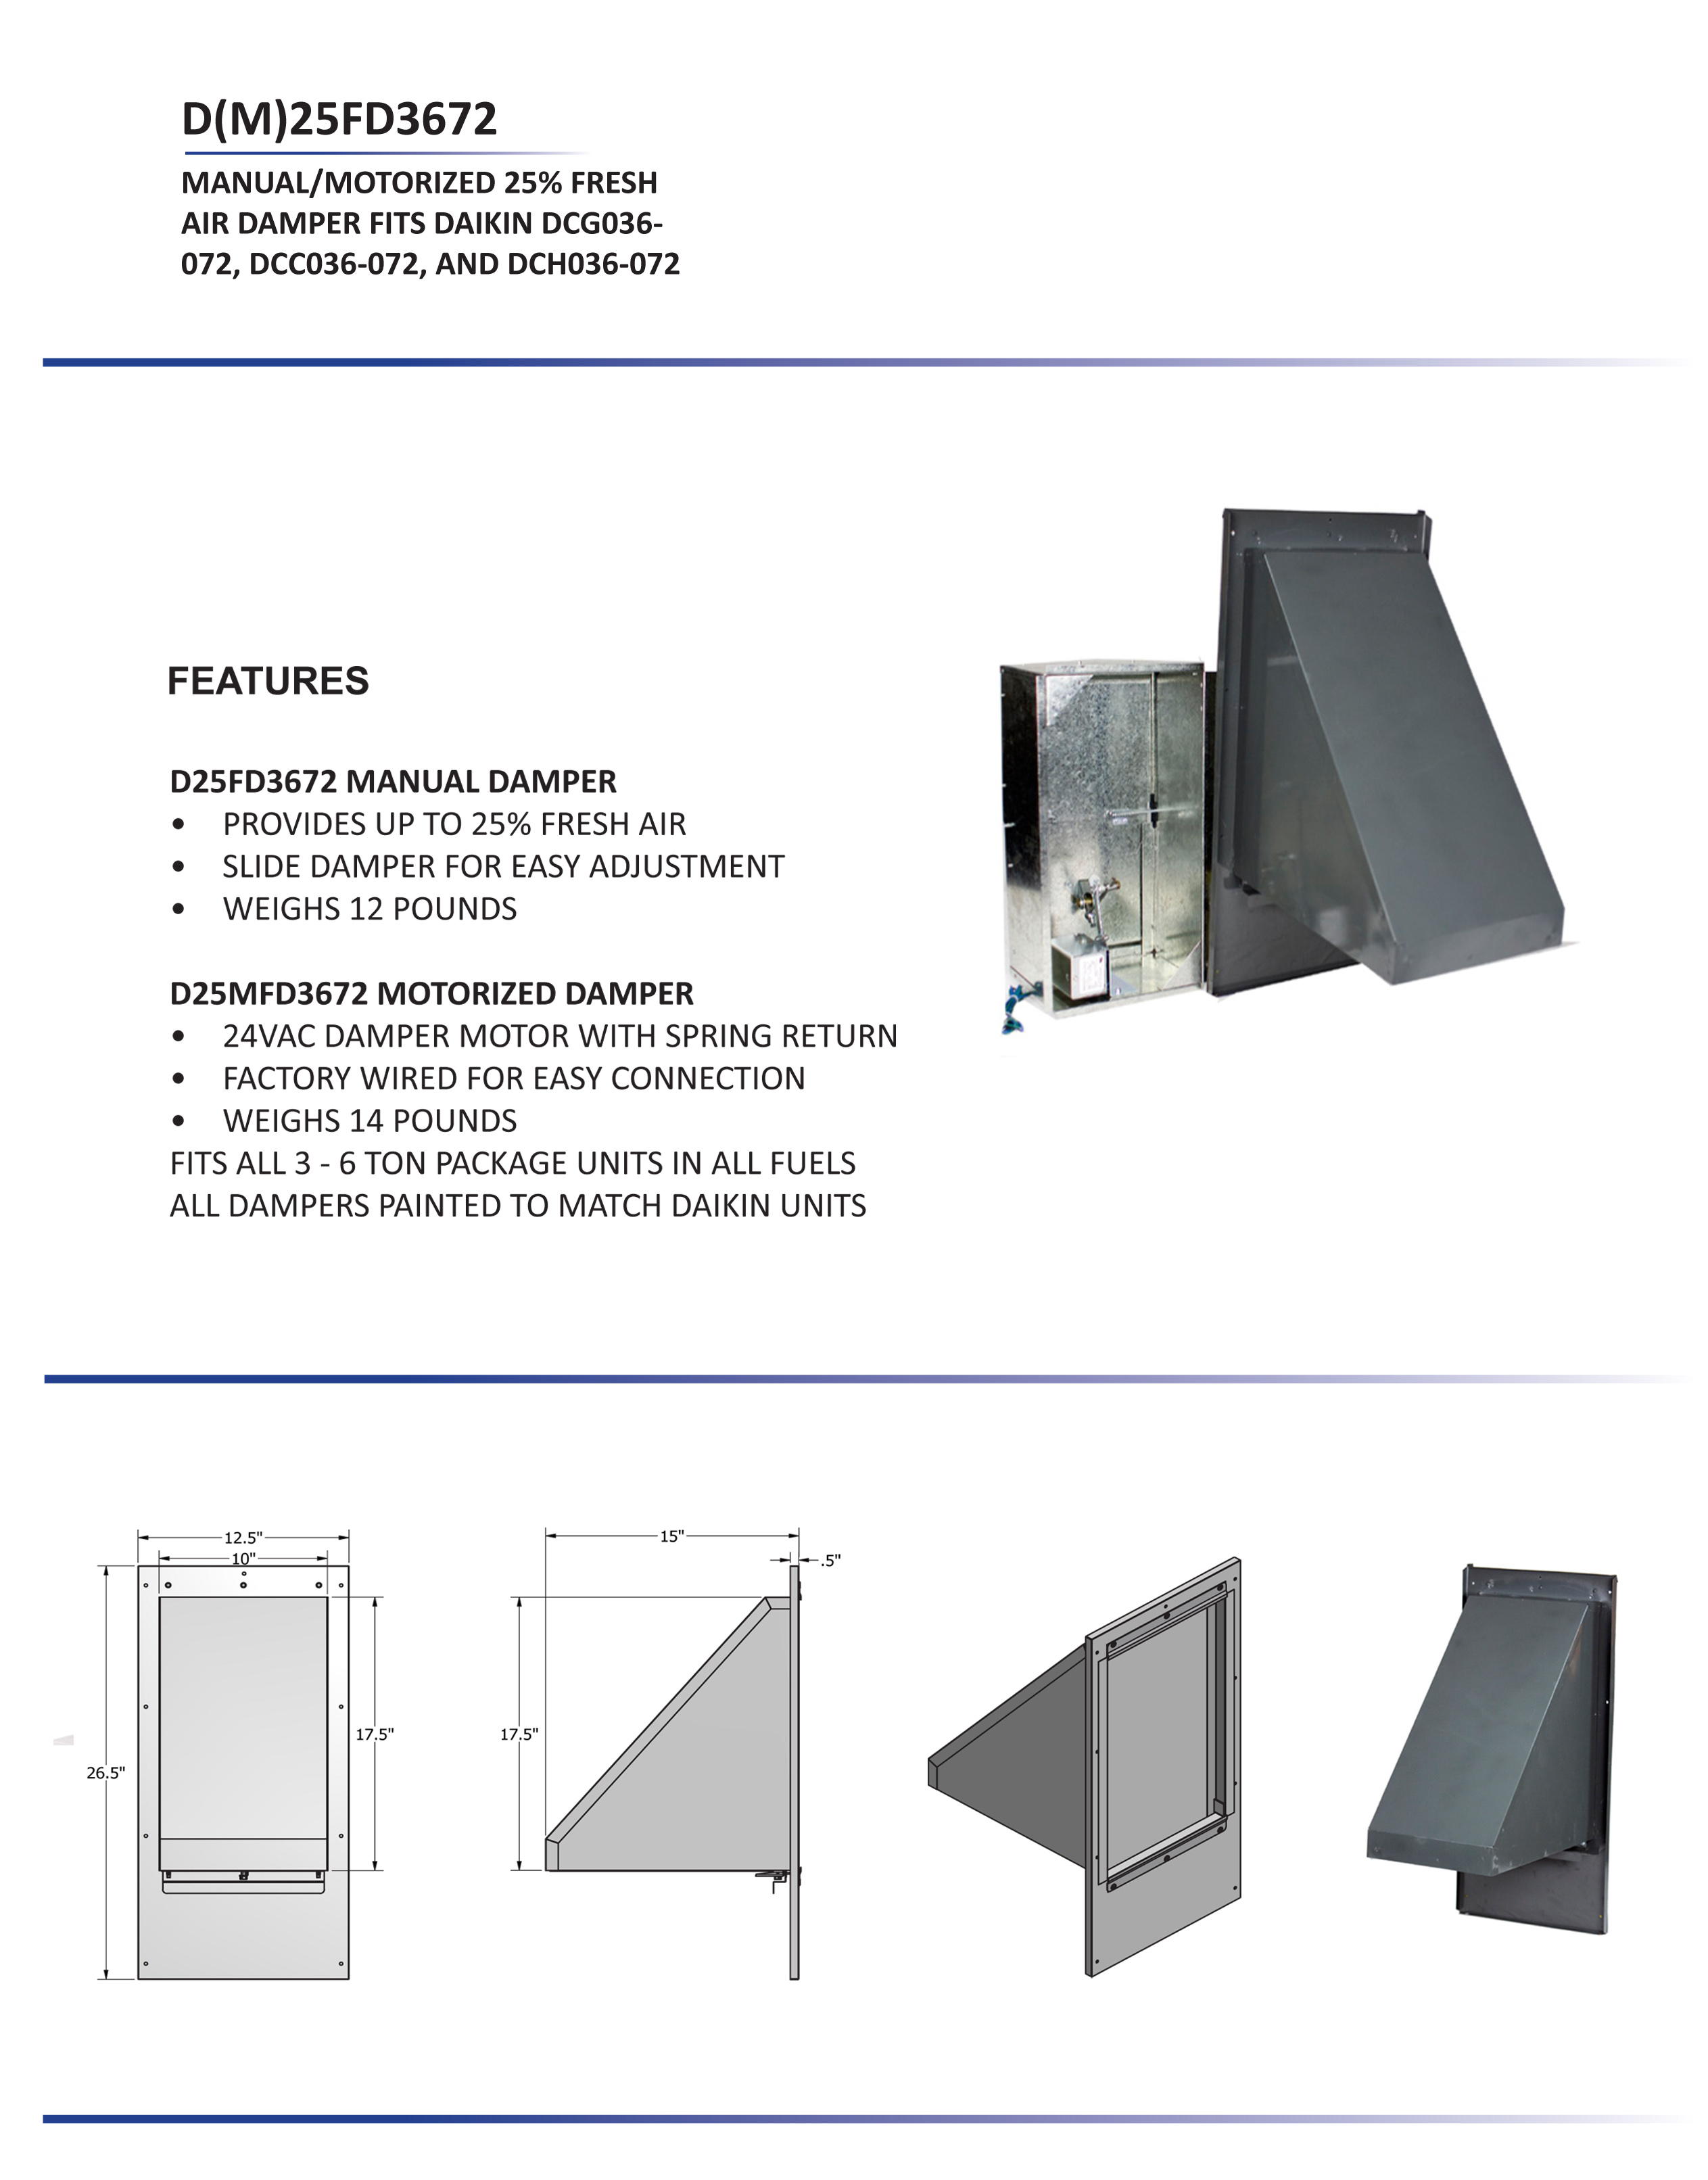 3 6 ton daikin 25 manual fresh air damper dcc dcg dch models 3 6 ton daikin 25 manual fresh air damper dcc dcg dch models d25fd3672 asfbconference2016 Image collections